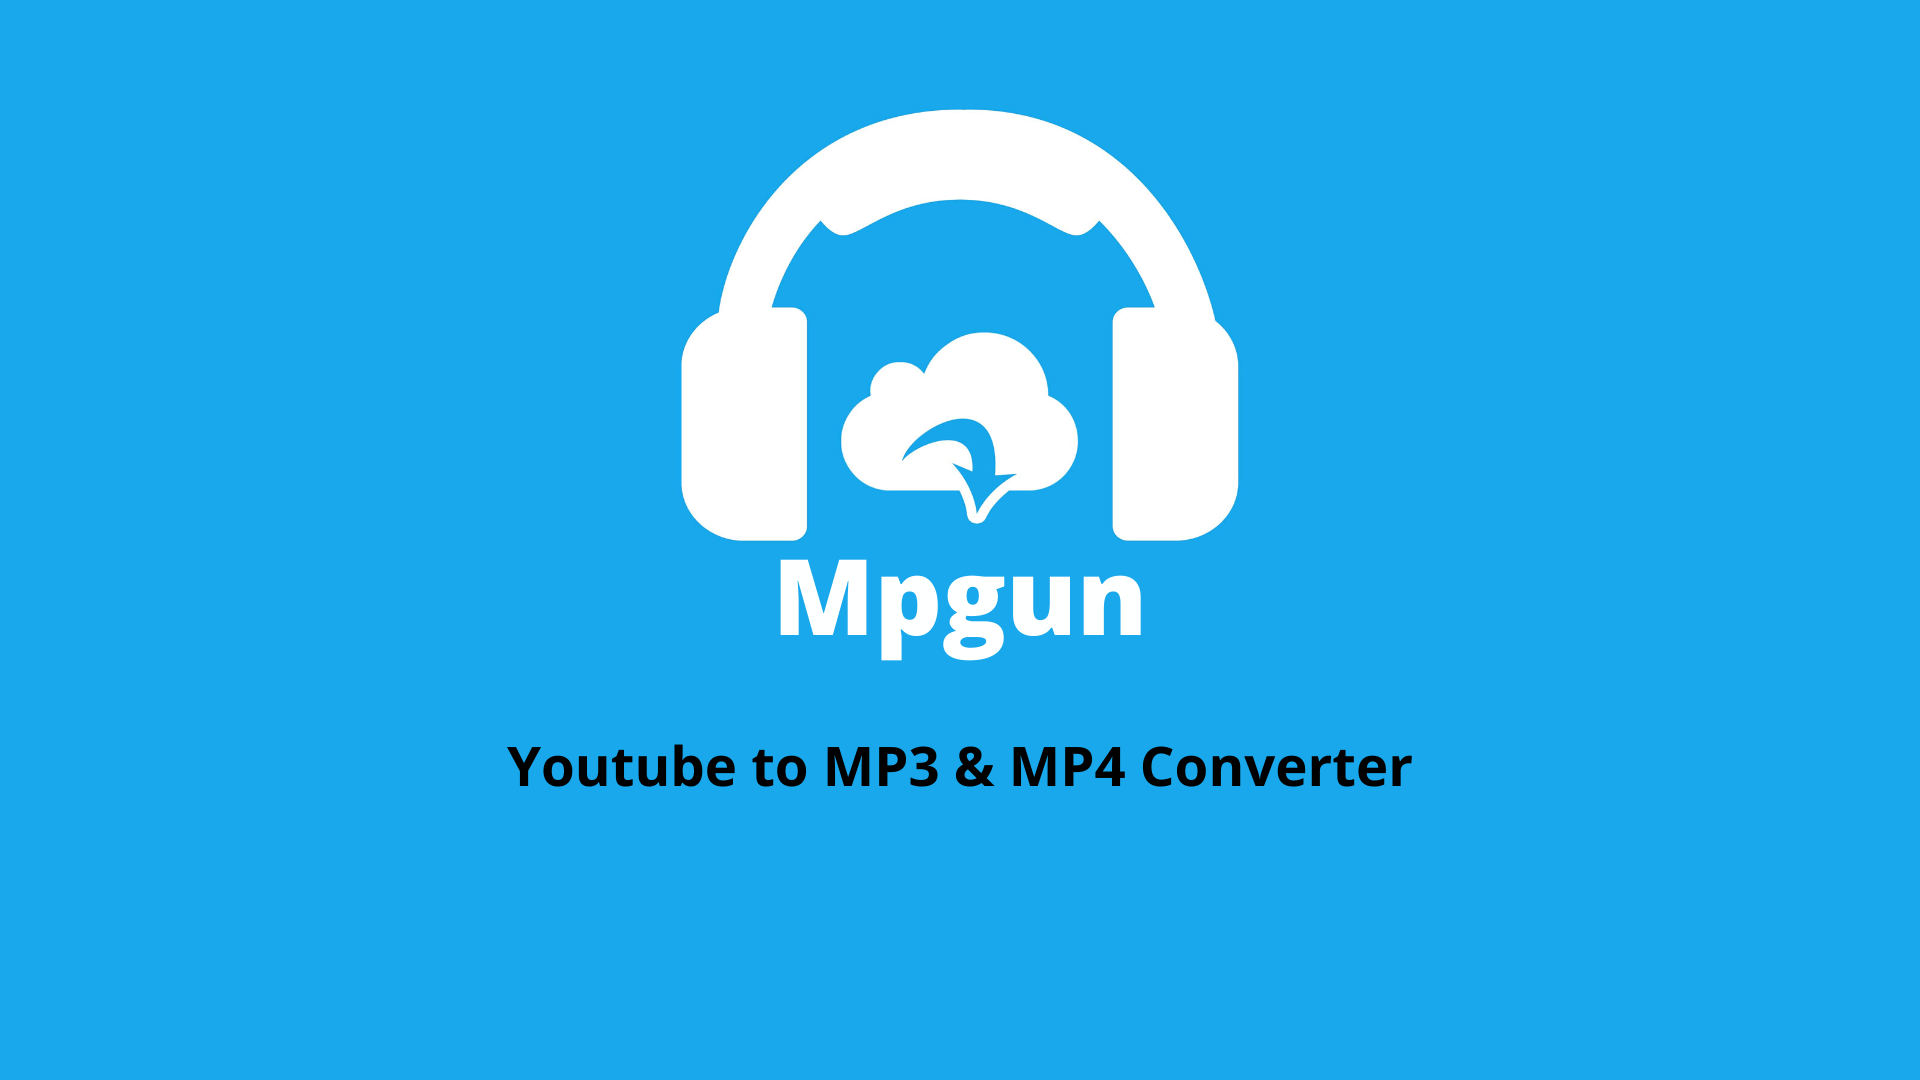 Mpgun Youtube Converter